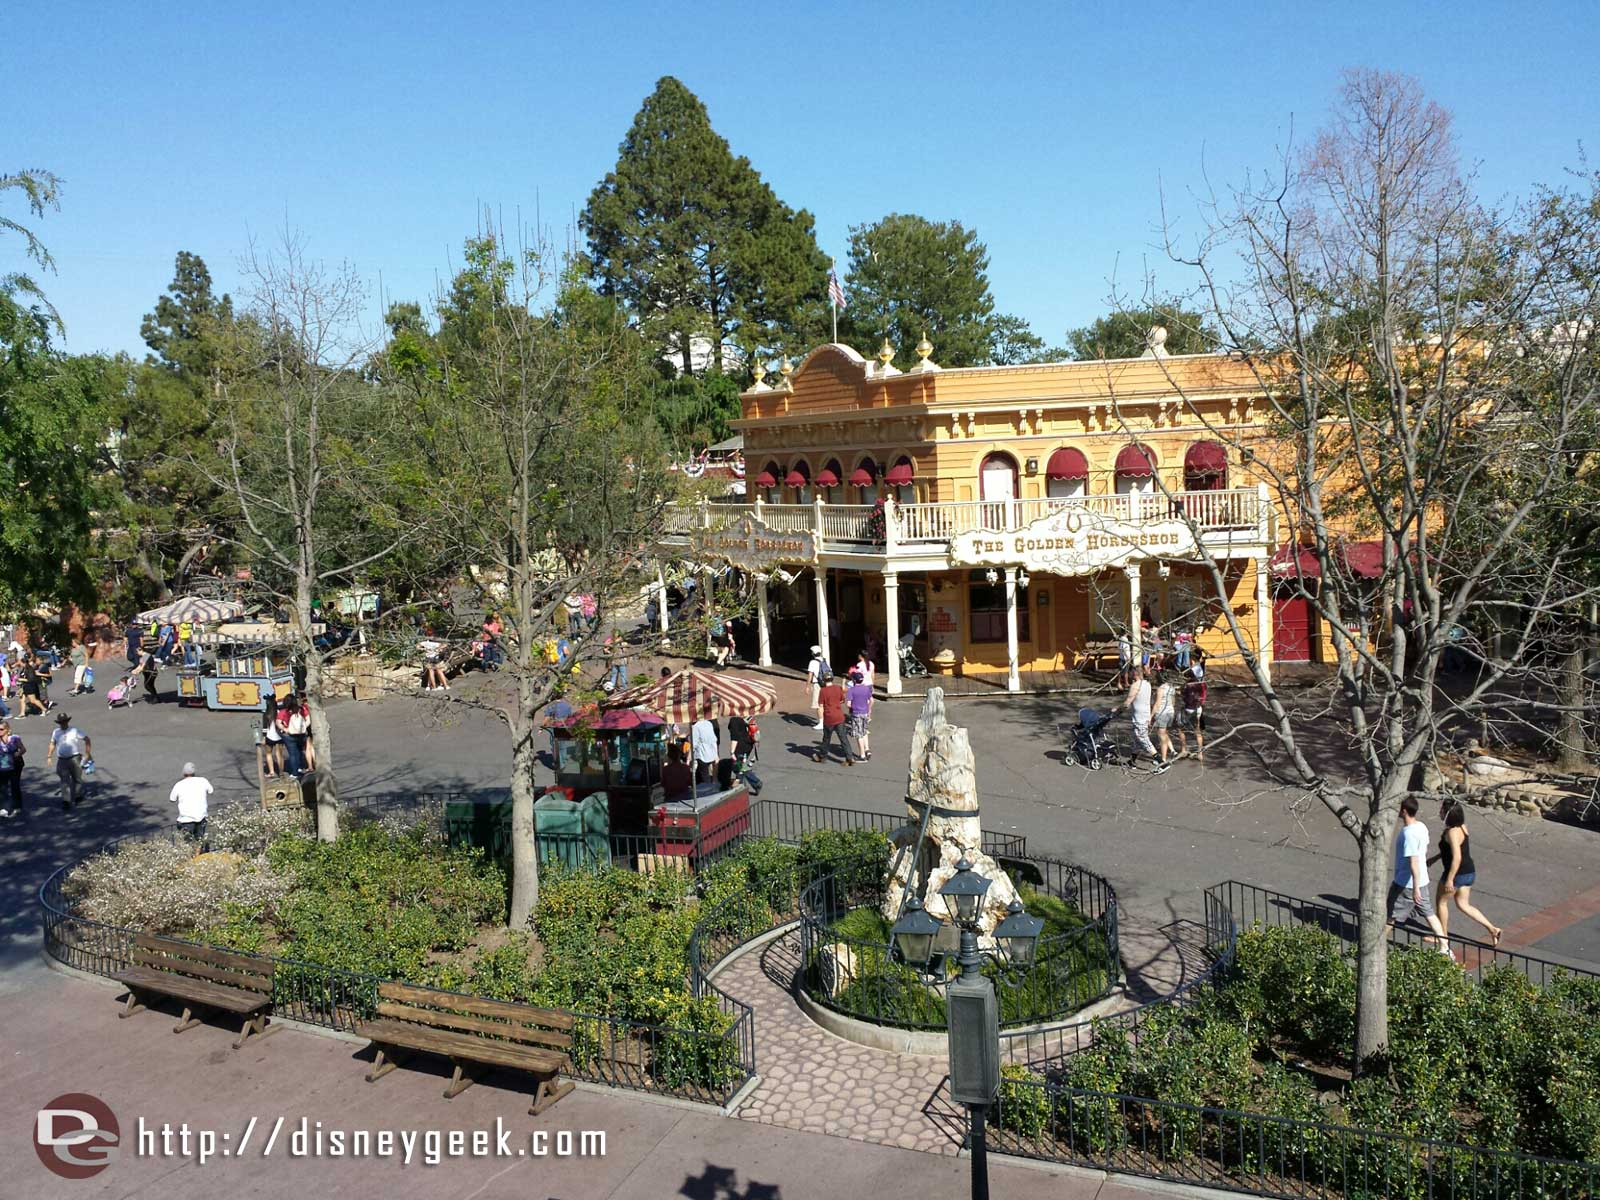 Frontierland from the Mark Twain #Disneyland